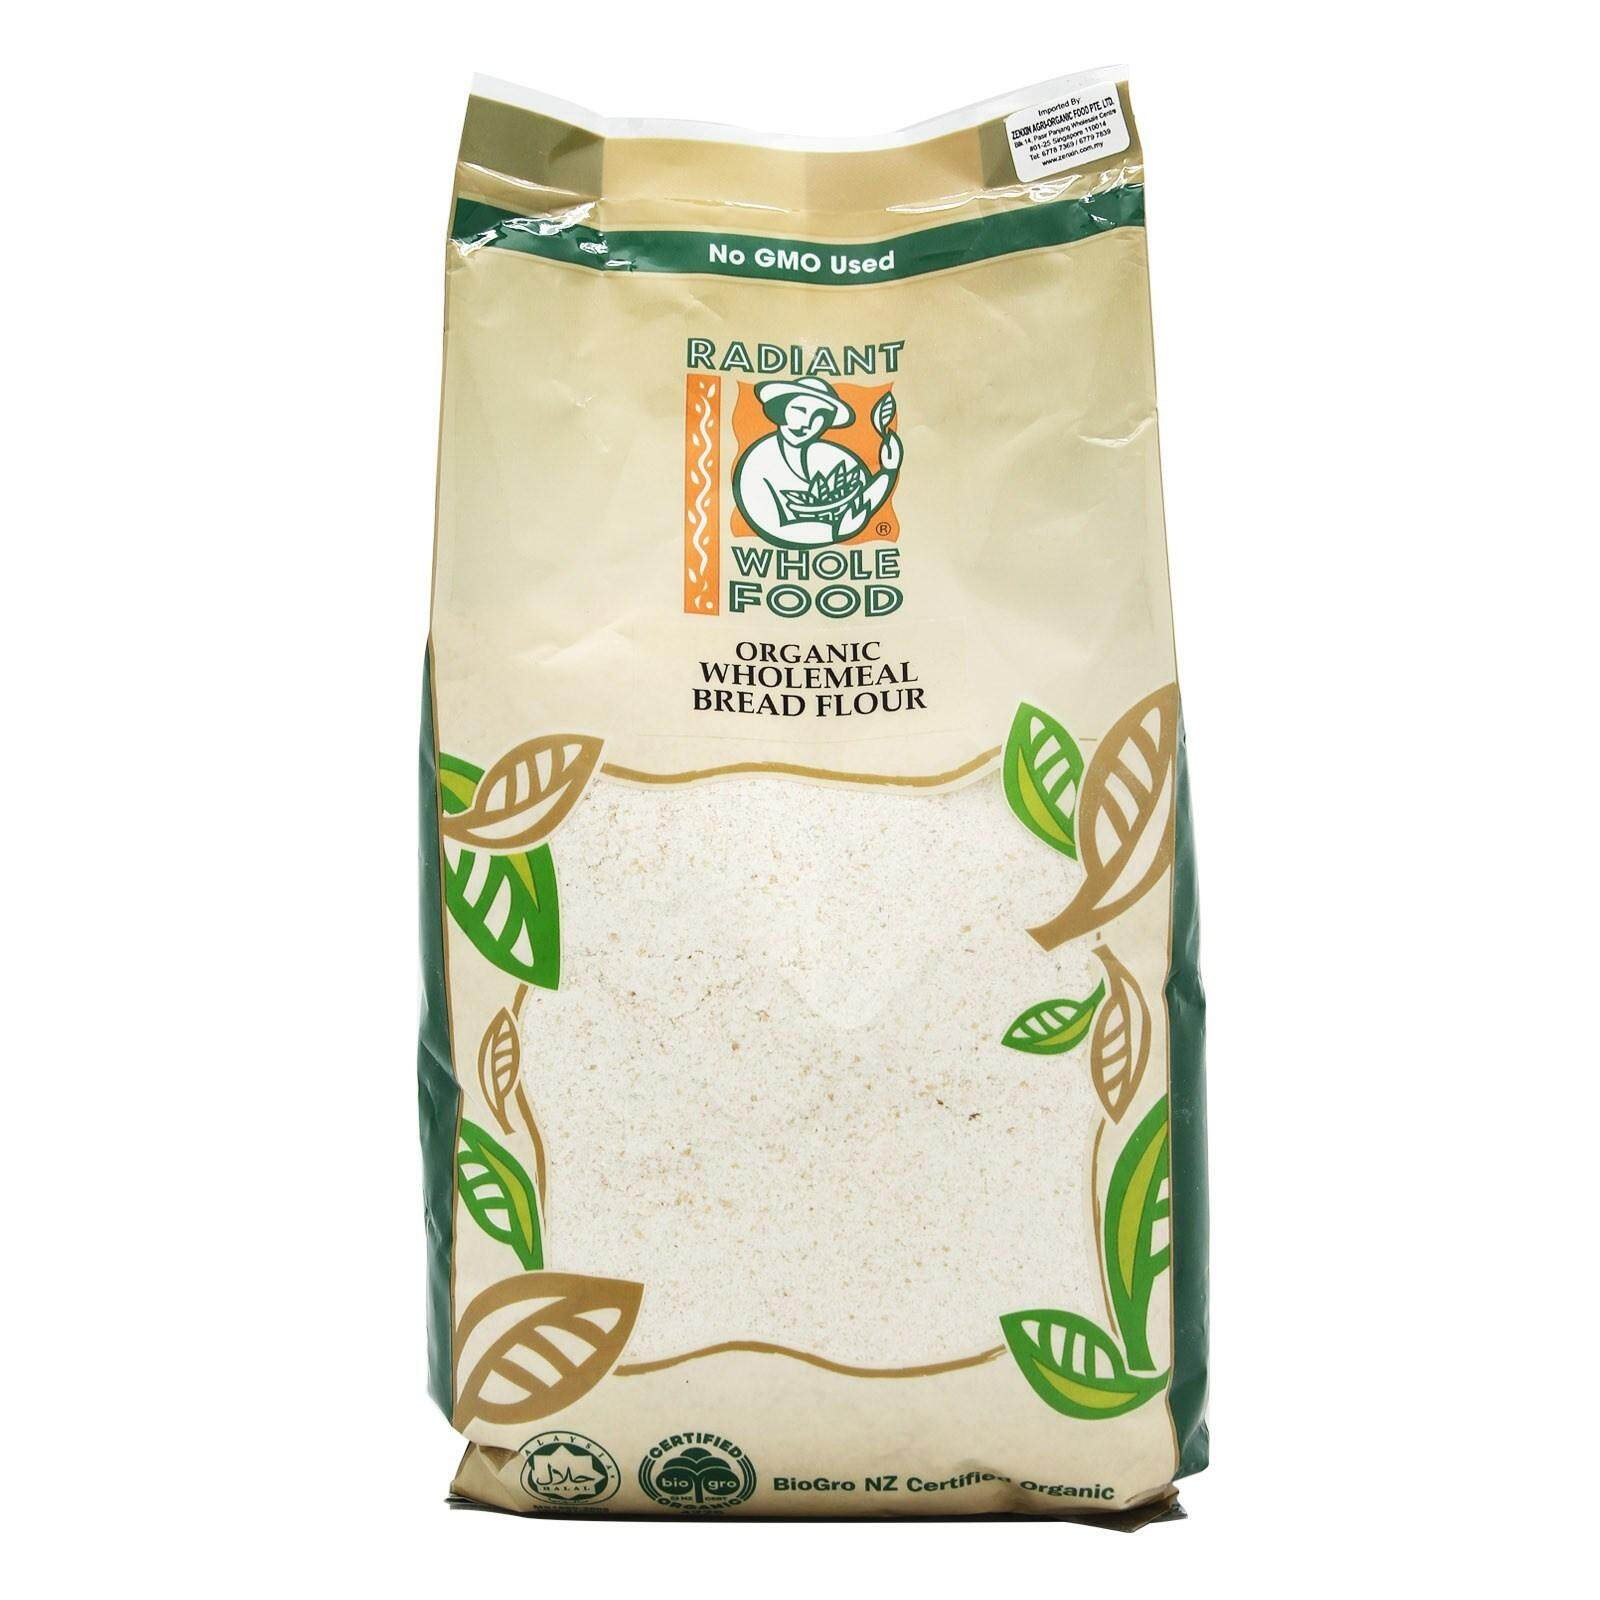 Radiant ORGANIC WHOLEMEAL BREAD 1KG